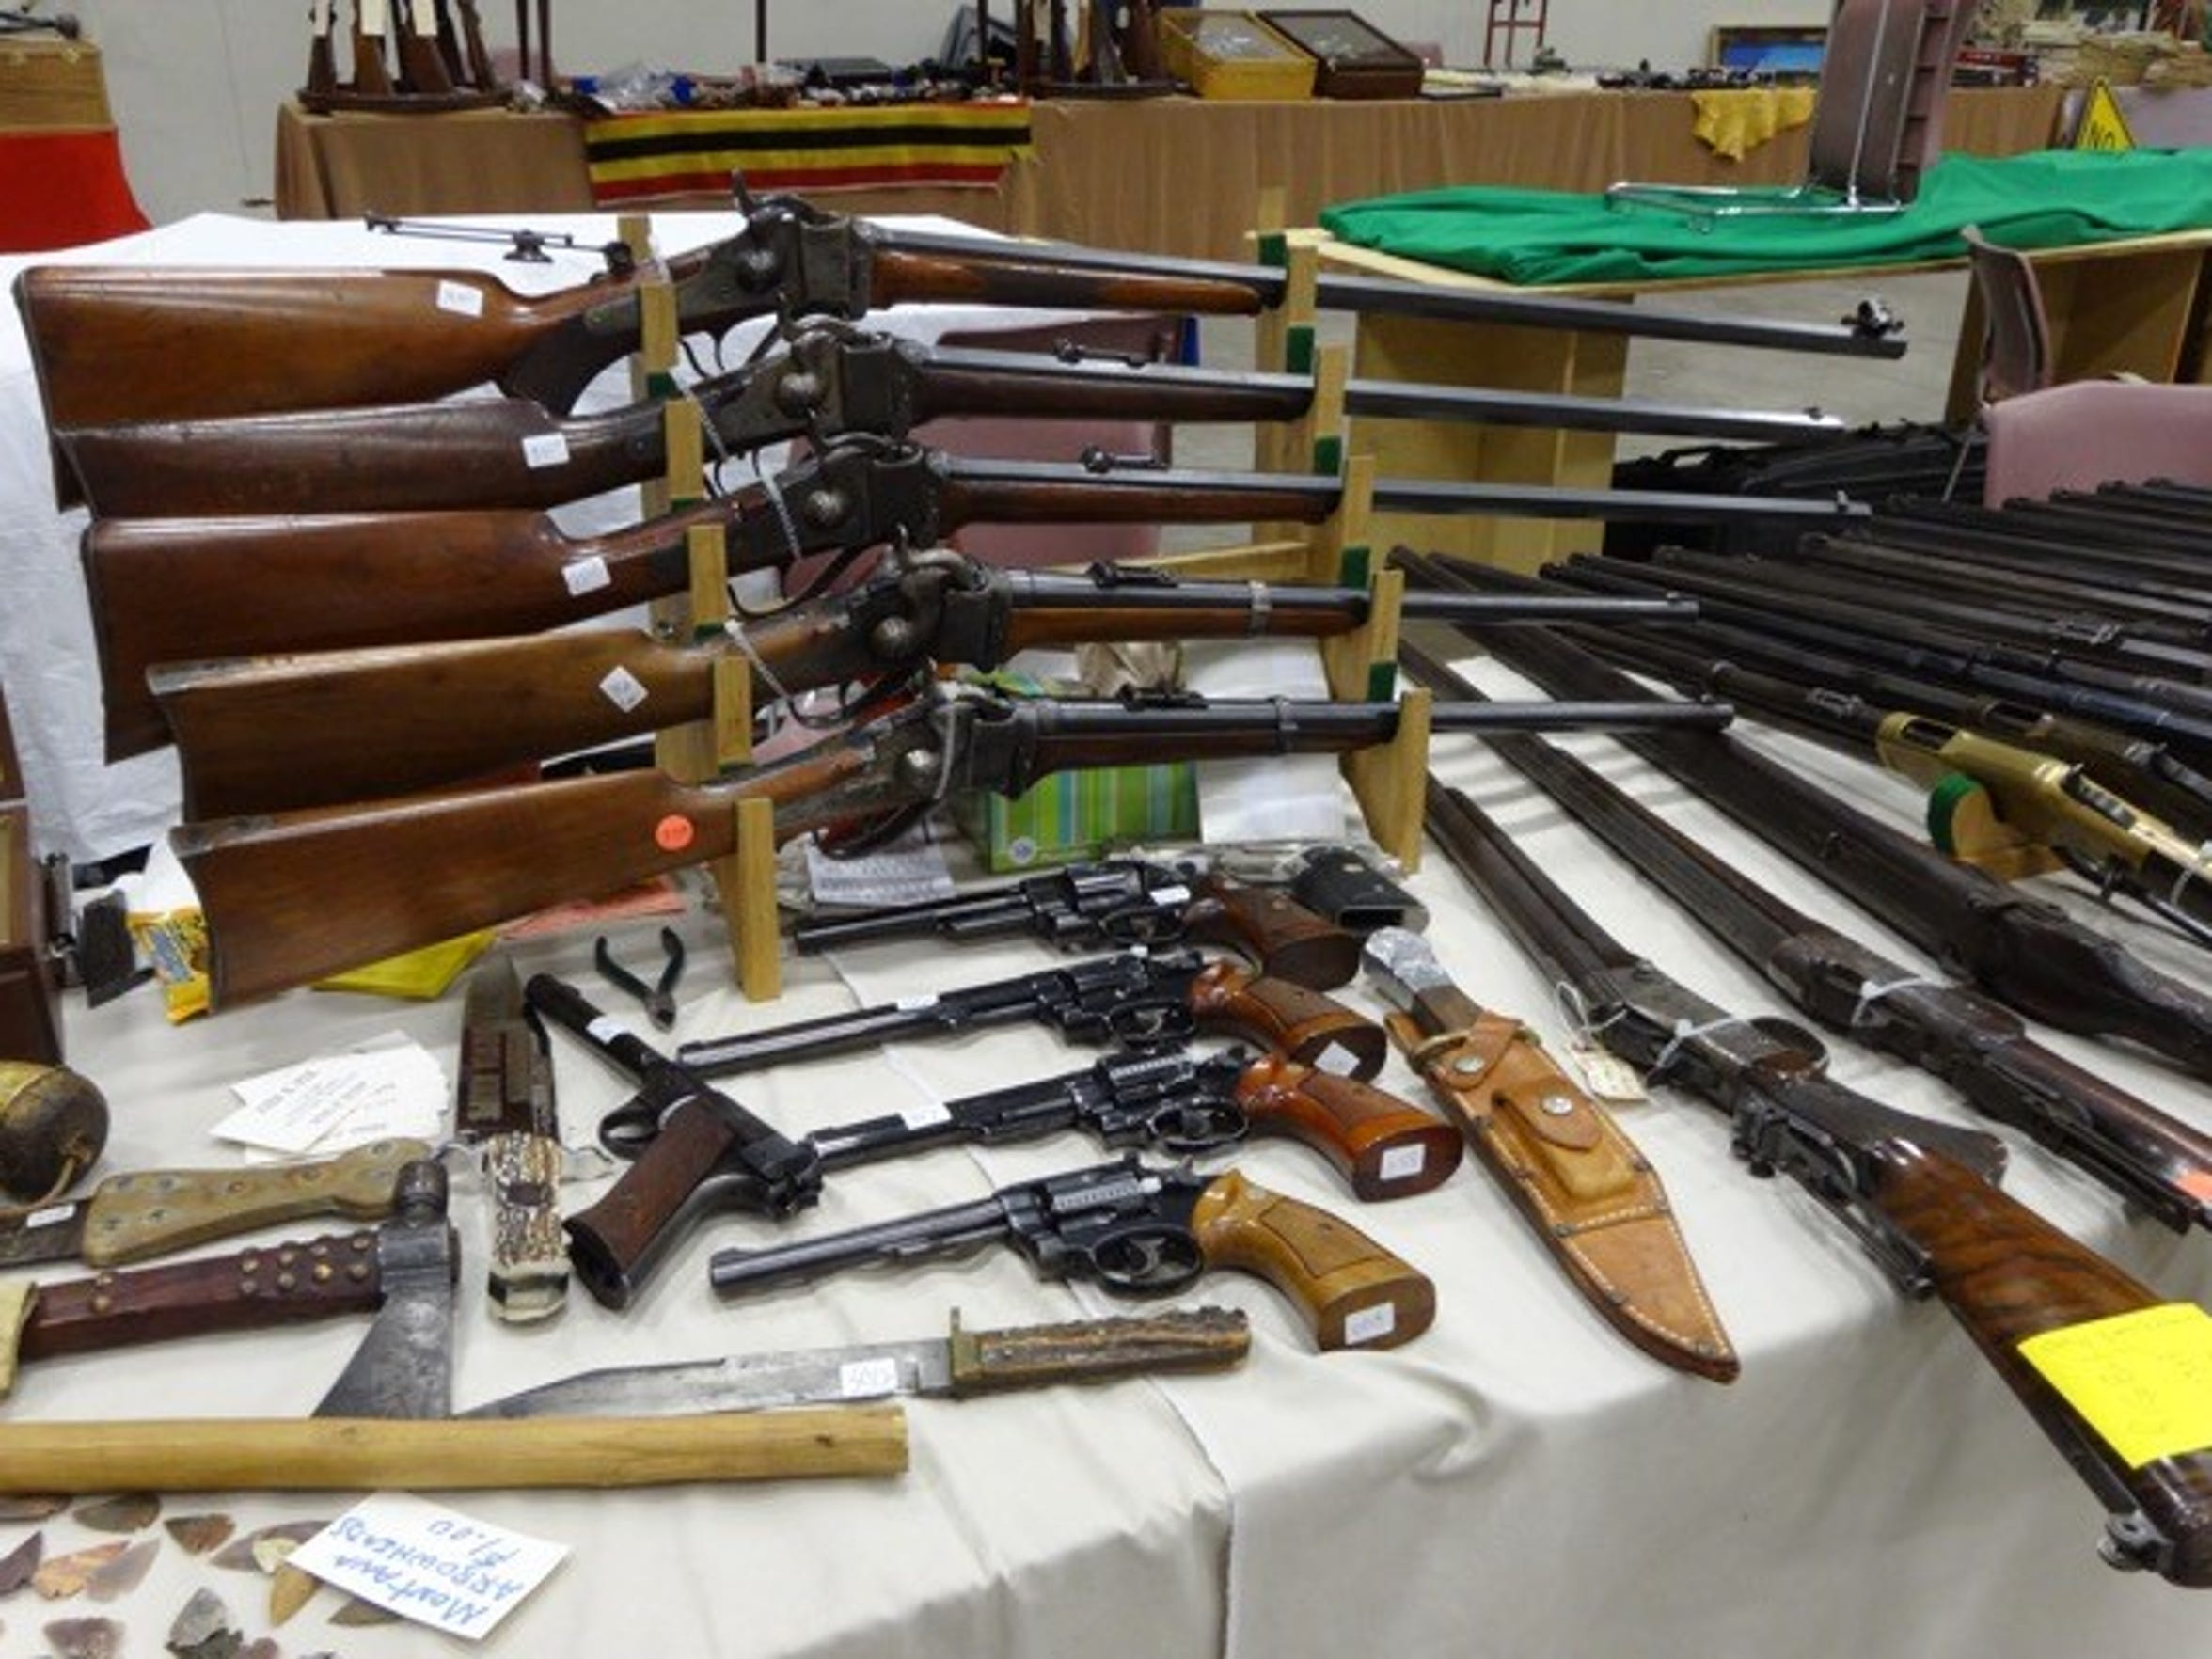 There are plenty of antique firearms on display at